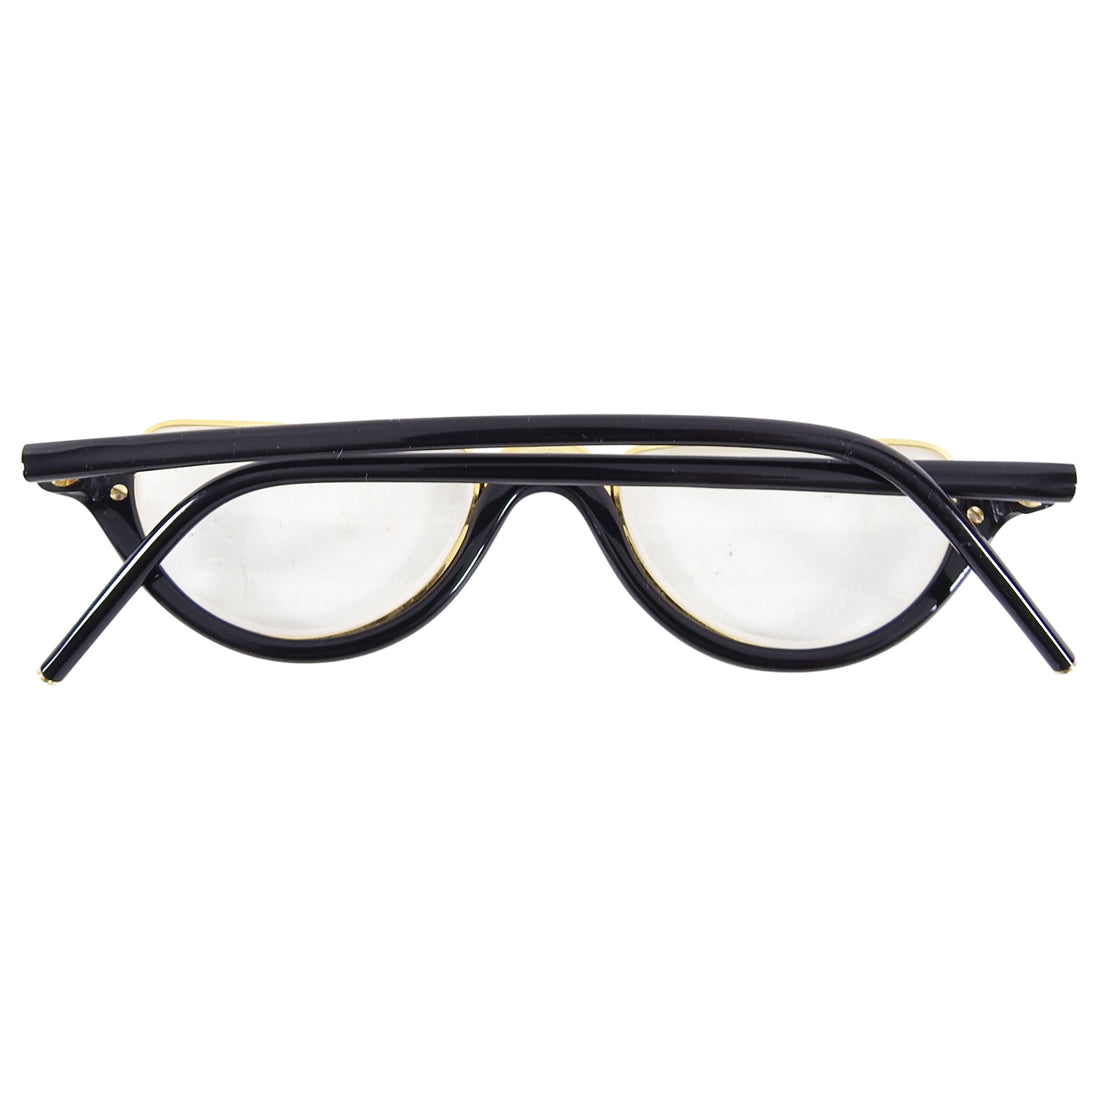 Gianfranco Ferre Vintage Black and Gold Prescription Reading Glasses